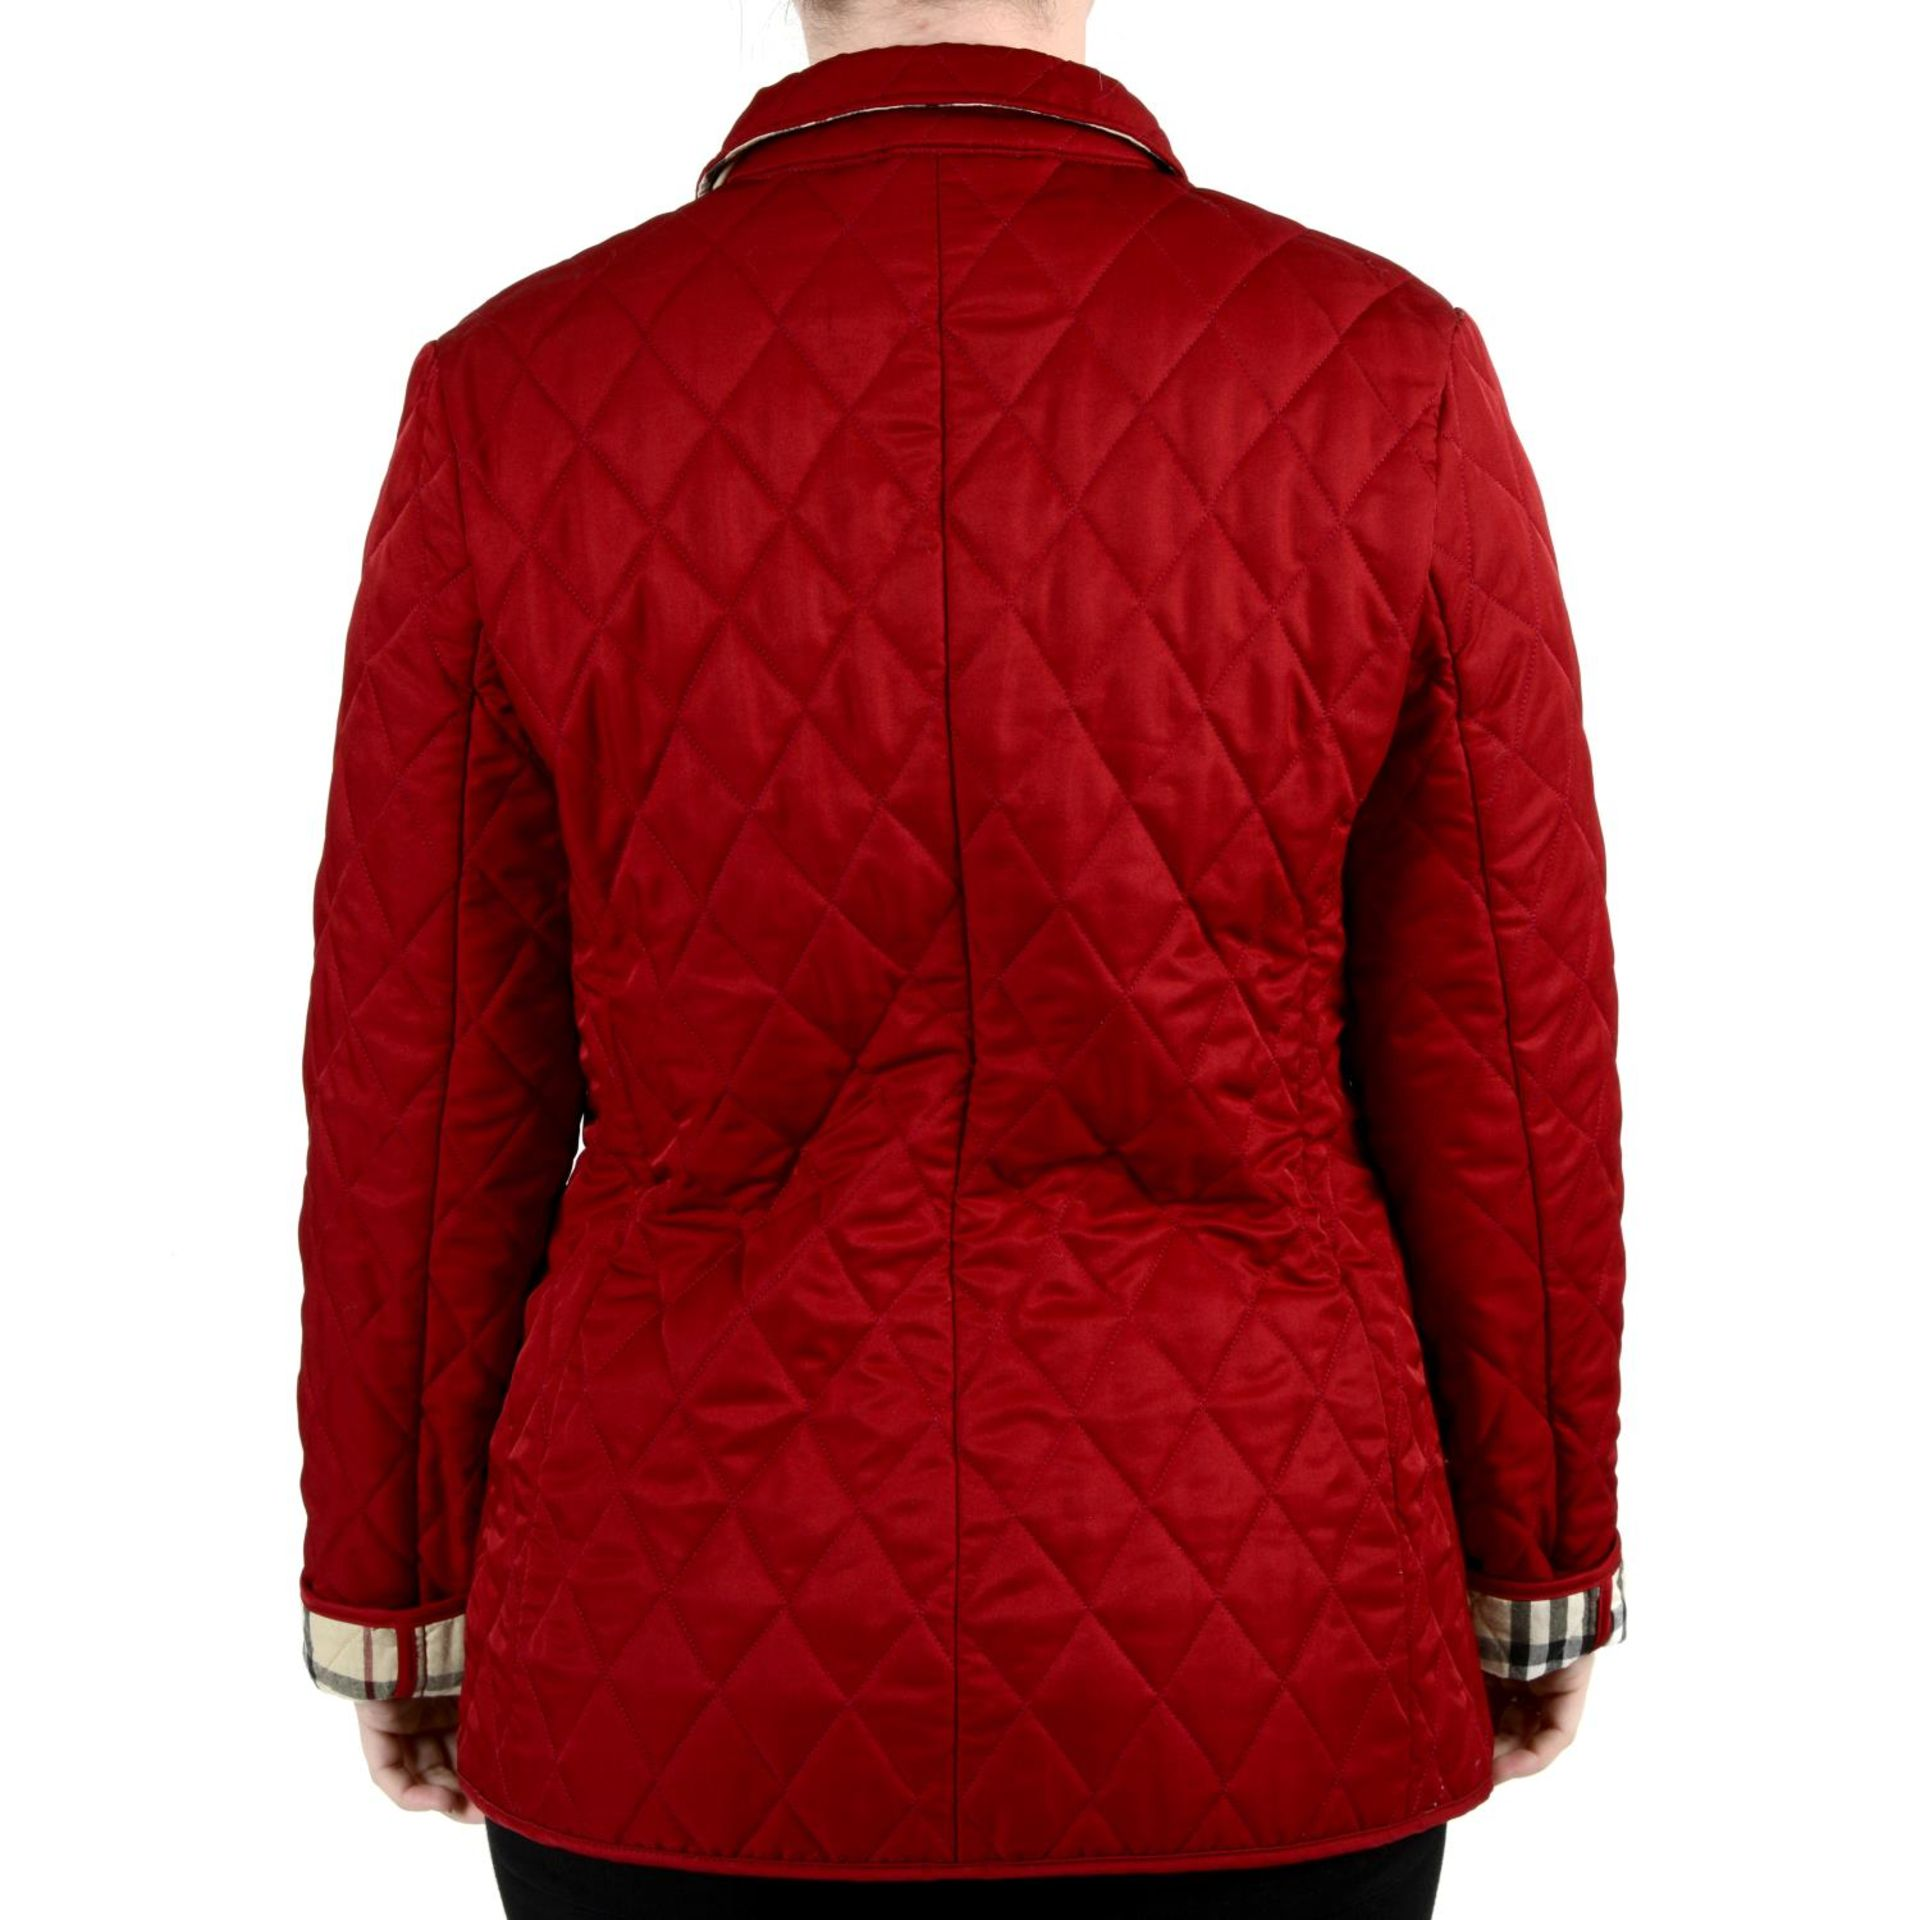 BURBERRY - a red quilted jacket. - Image 2 of 4